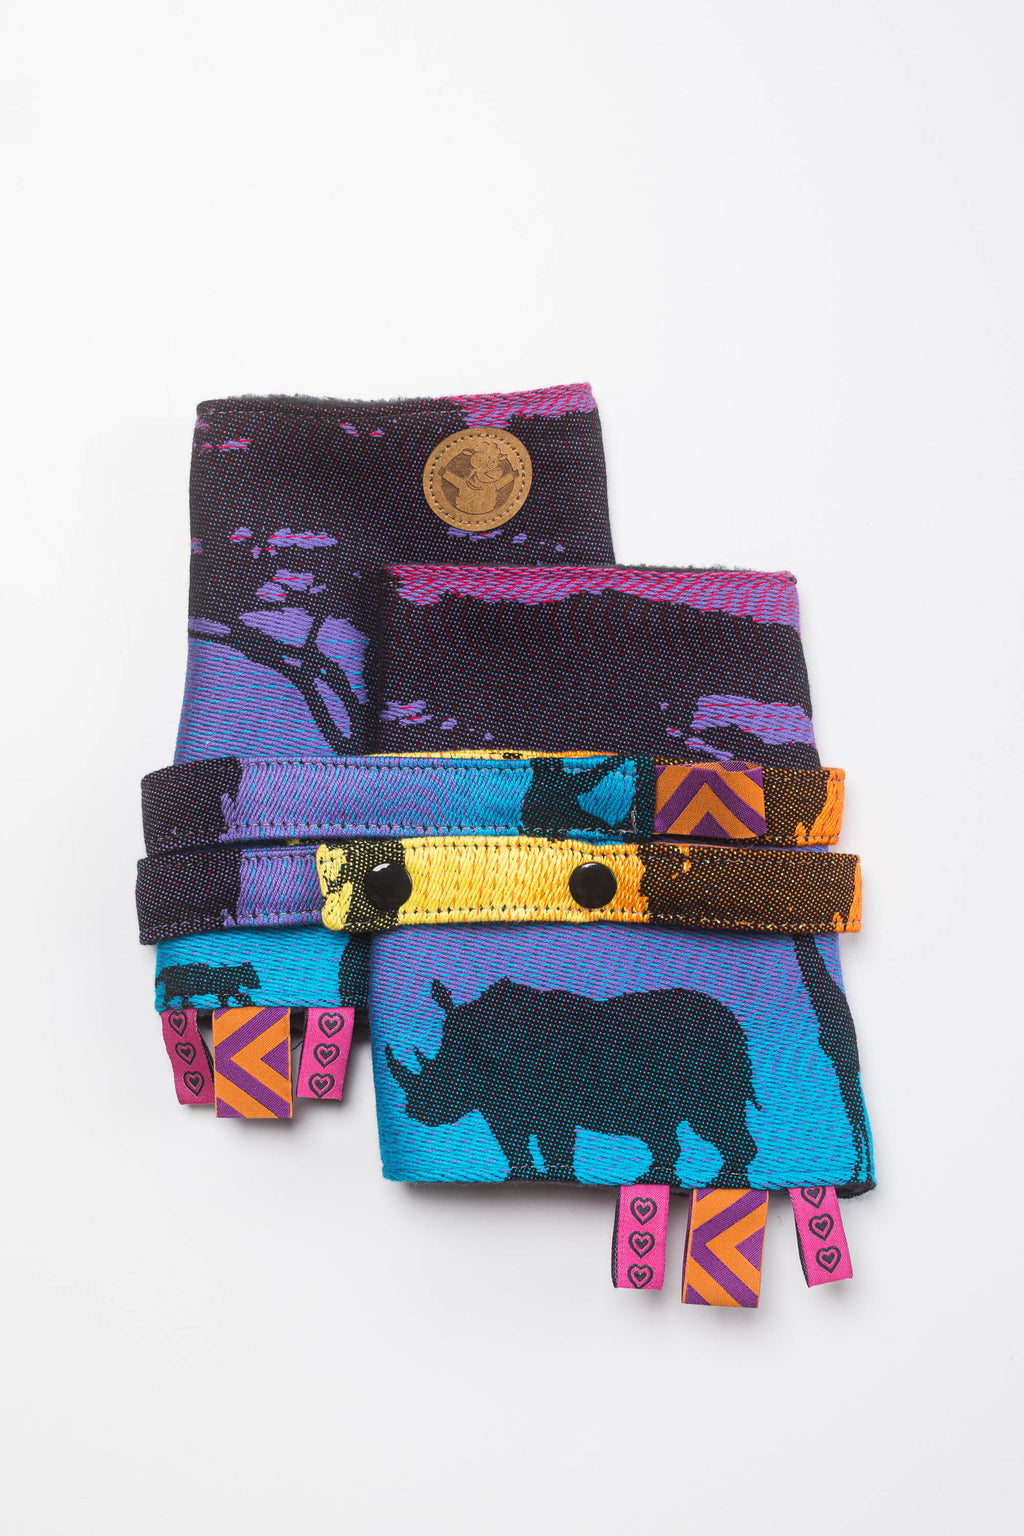 LennyLamb Drool Pads & Reach Straps - Rainbow Safari 2.0